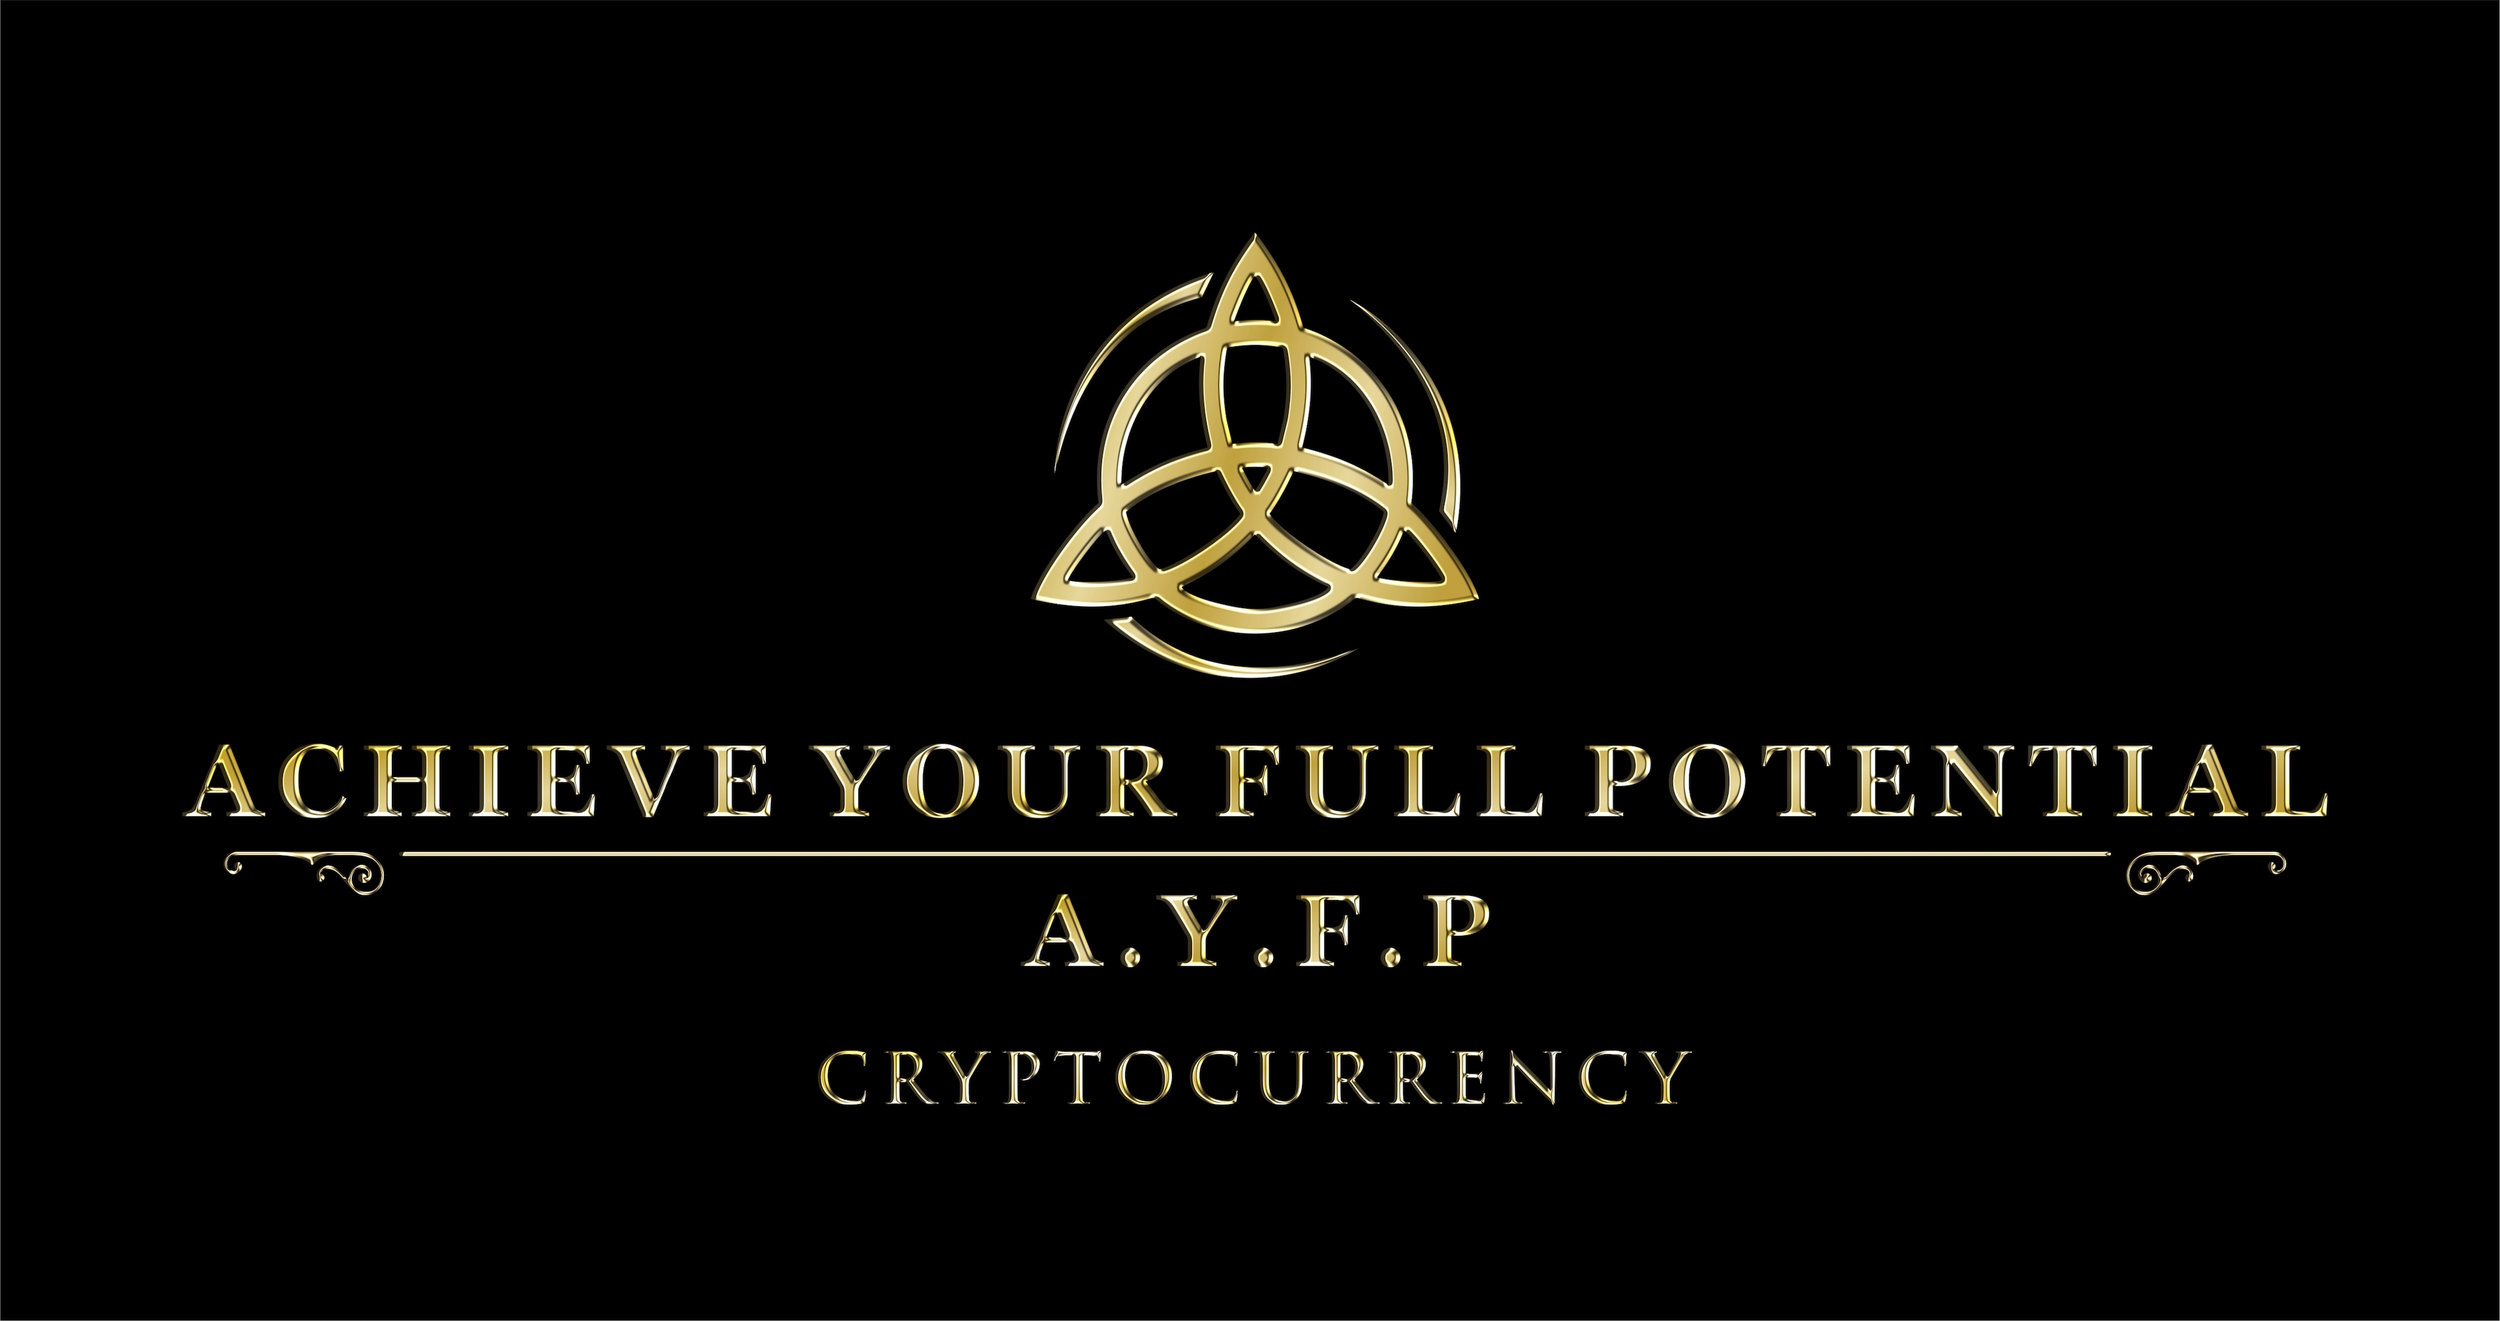 AYFP_cryptocurency copy.jpg